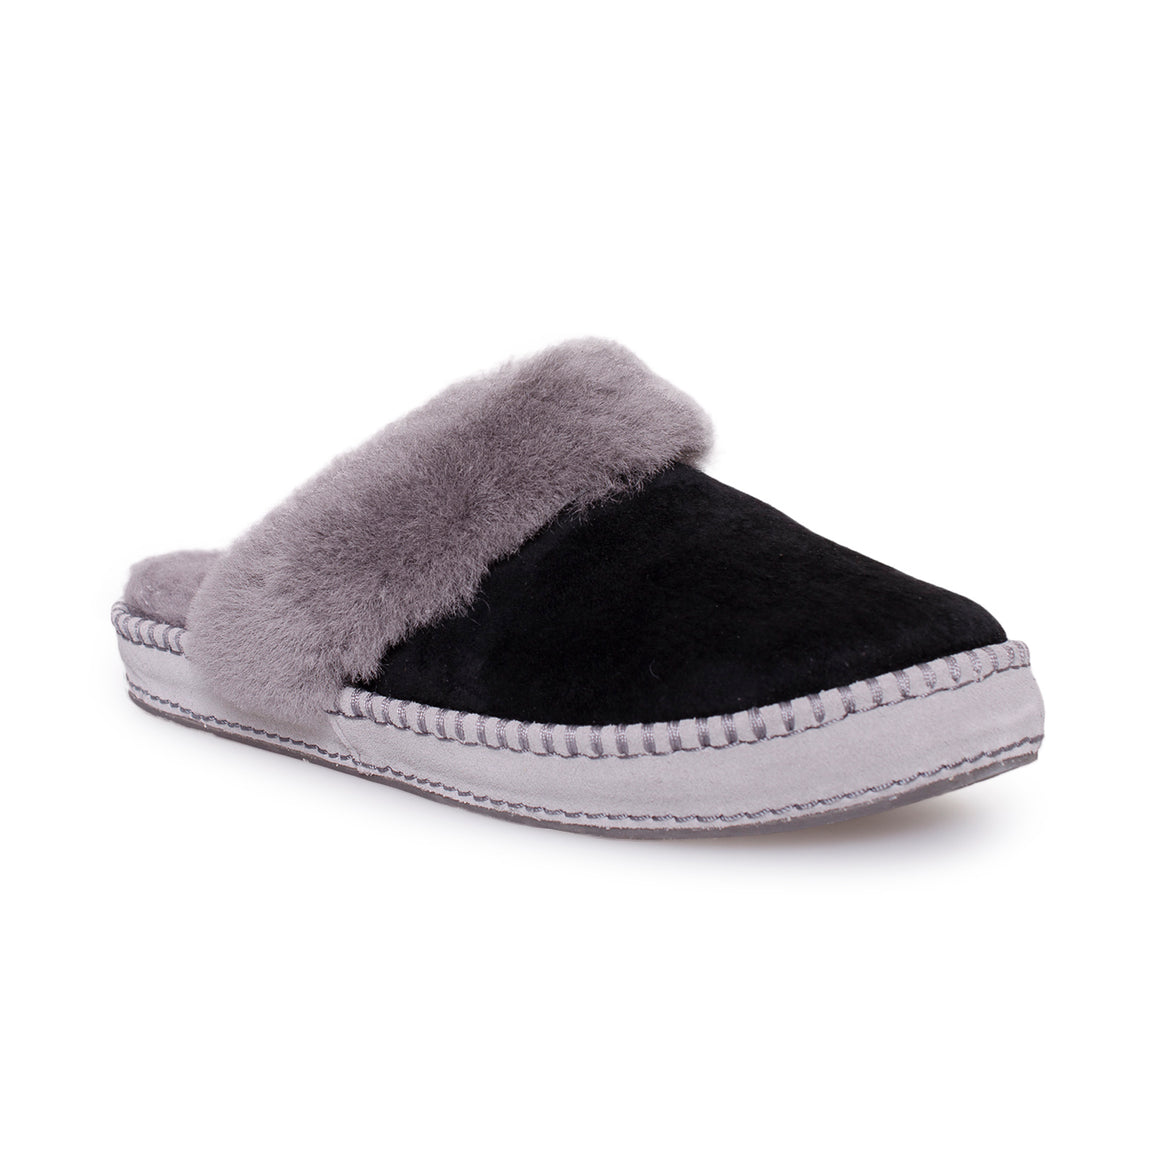 UGG Aira Black Slippers